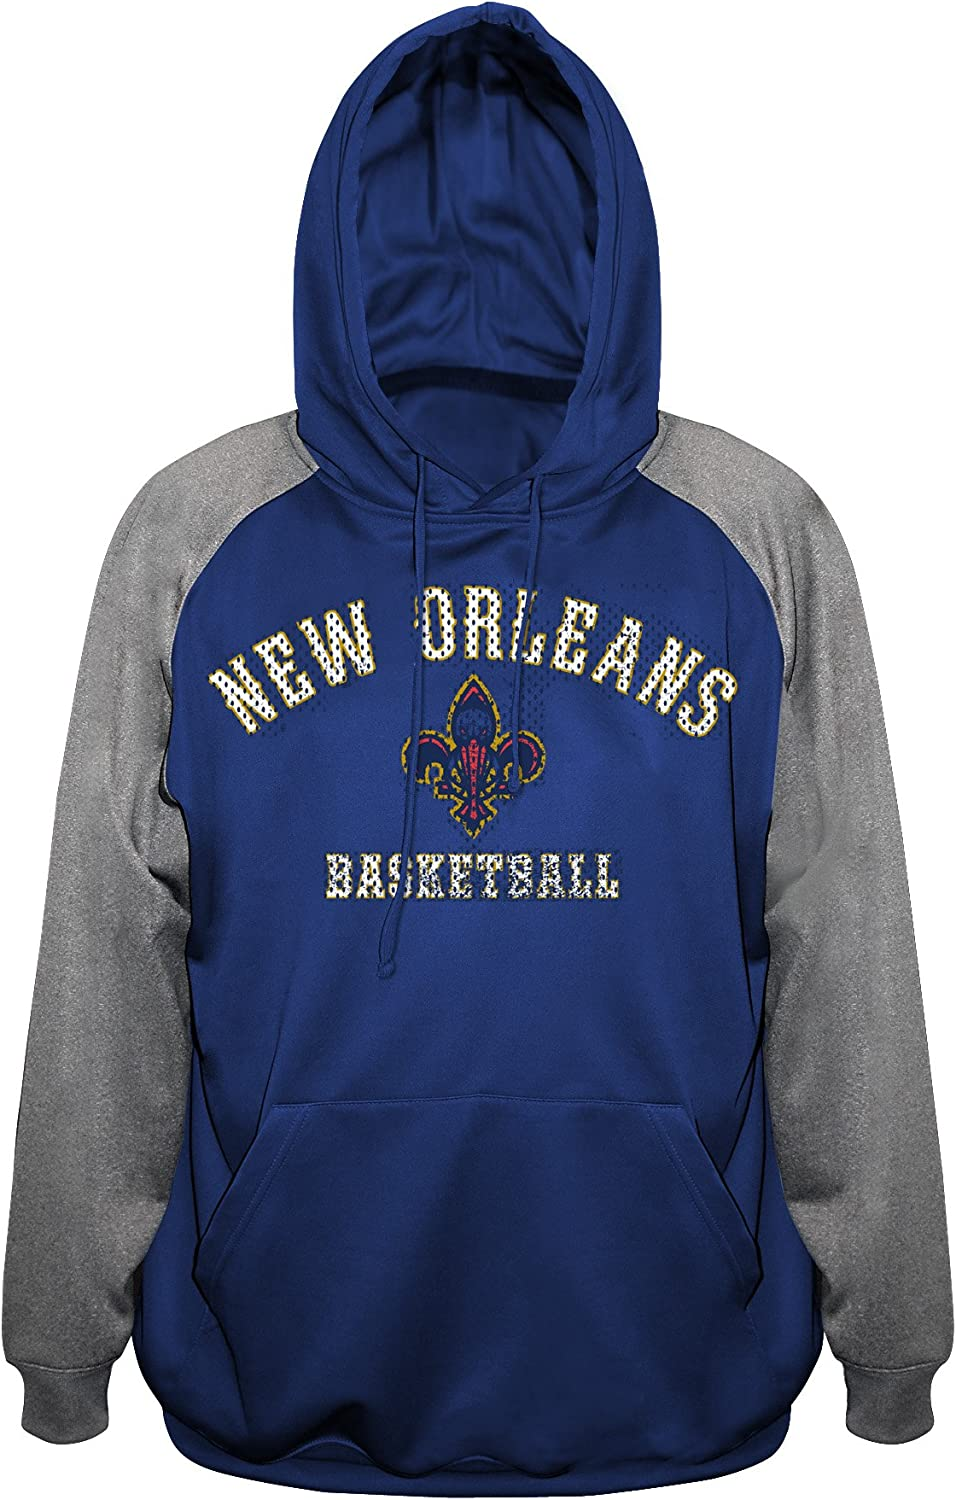 NBA BT Today's only Poly Fleece Hood 3X Tall Charcoal Ranking TOP17 Navy